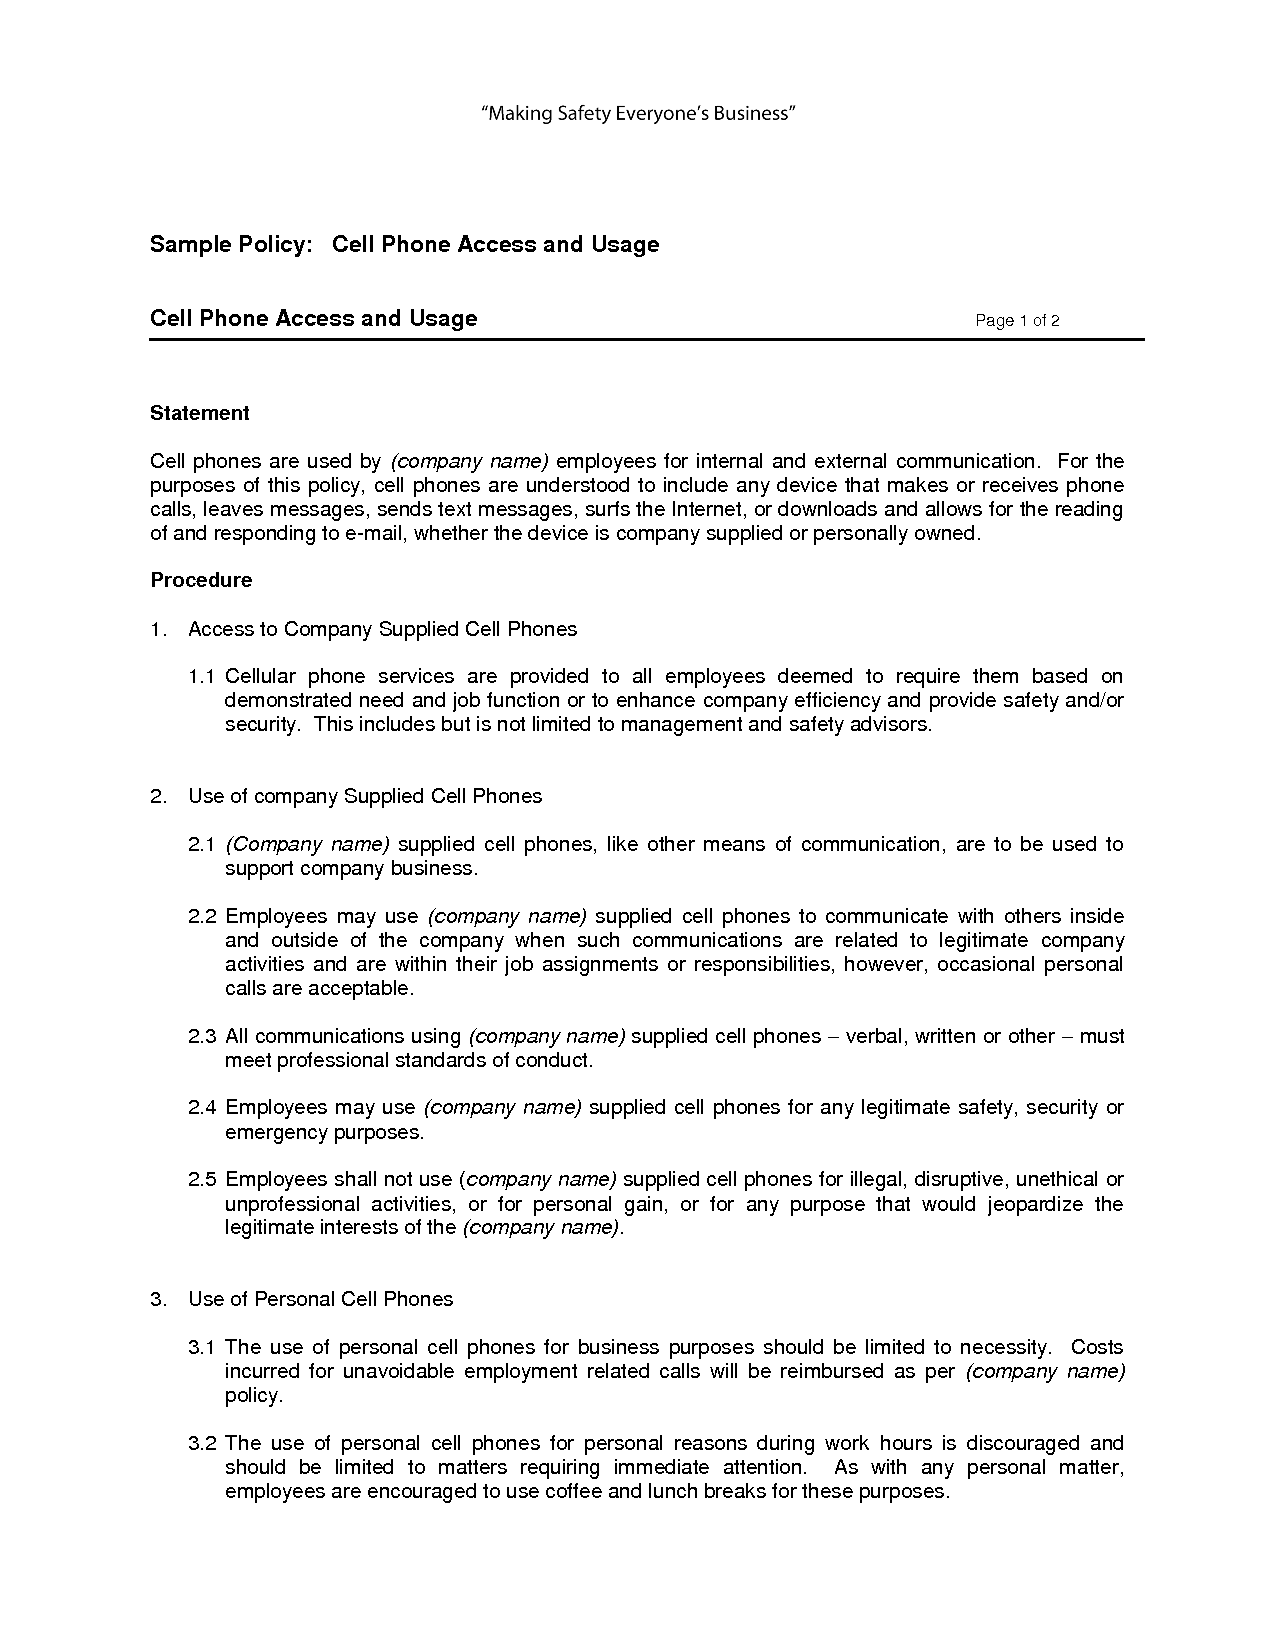 policies and procedures document real estate manual